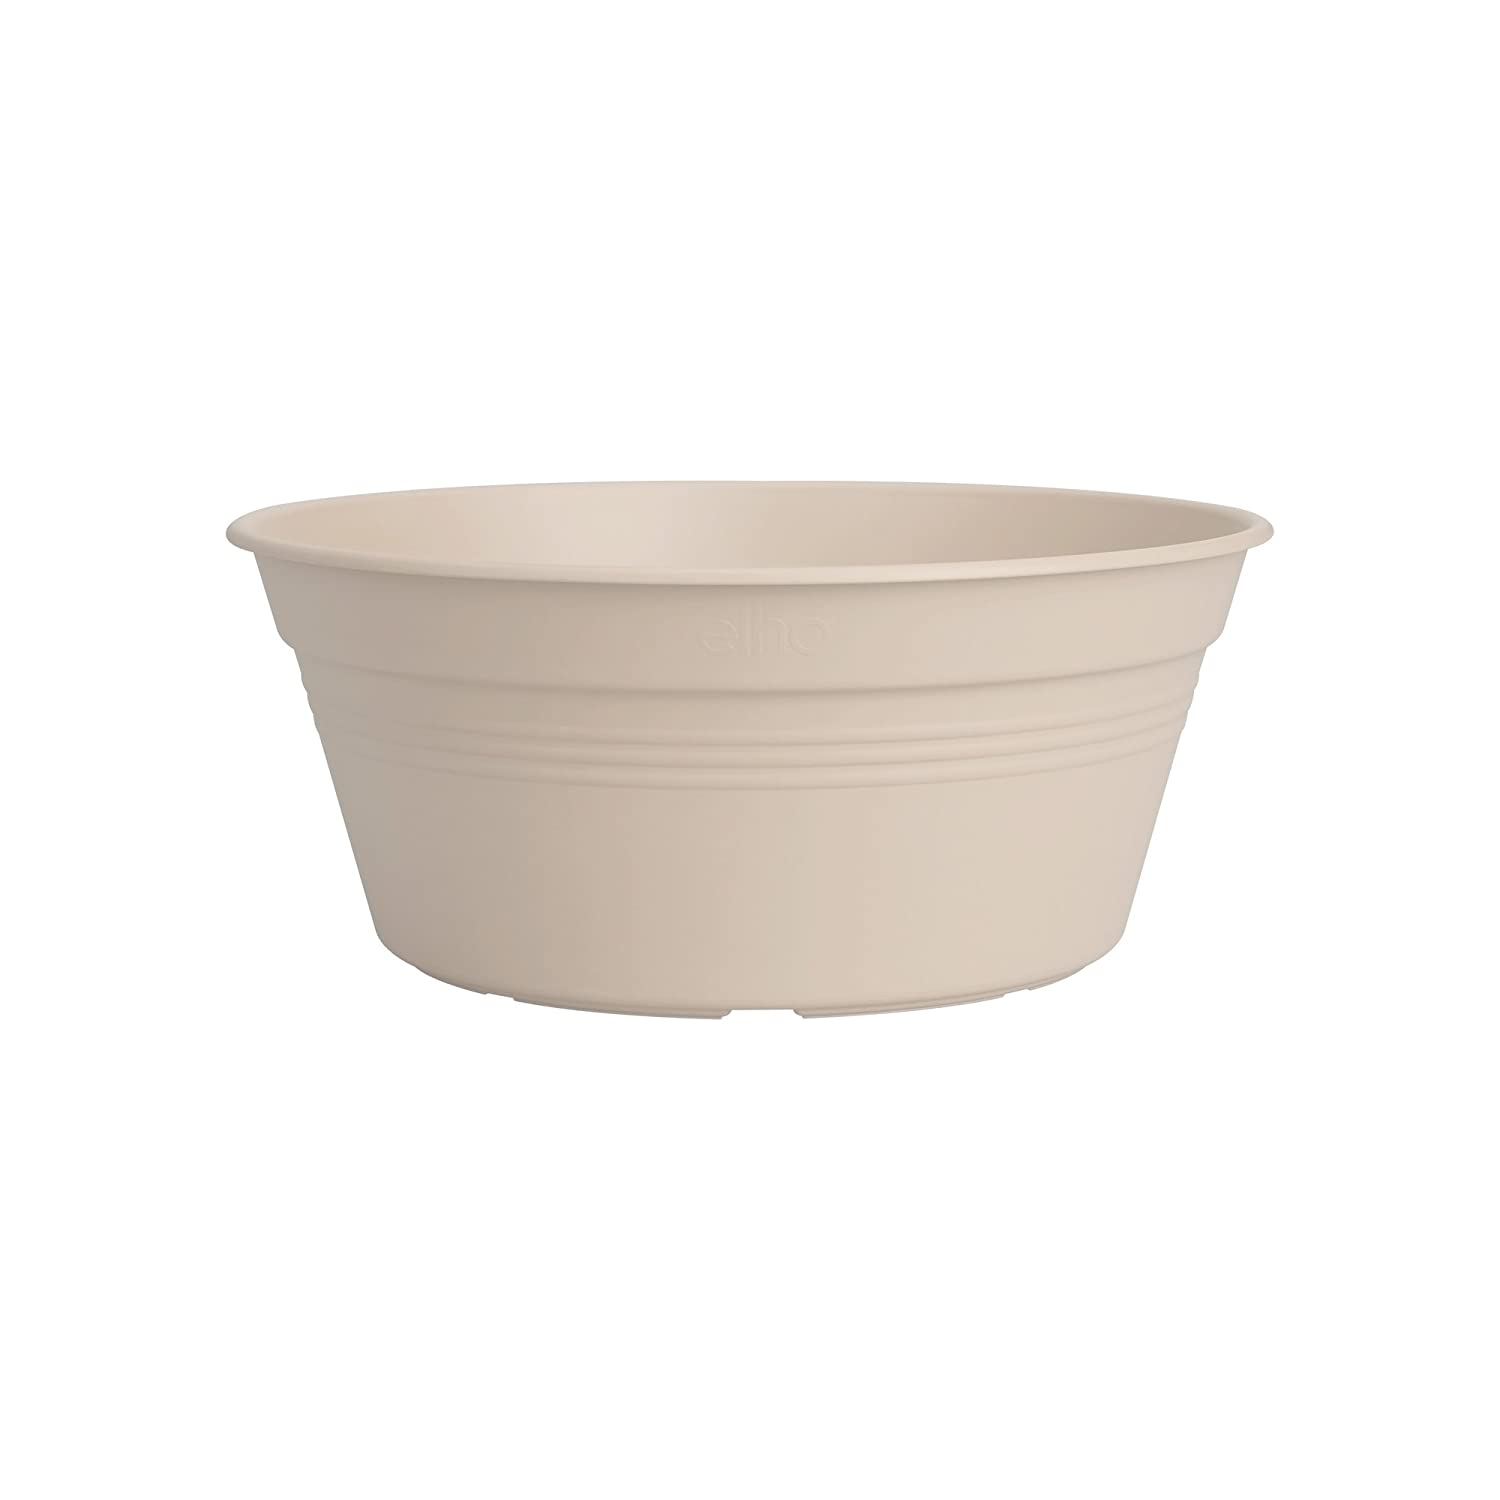 Elho green basics bowl 27cm flowerpot - cotton white 3151162745300